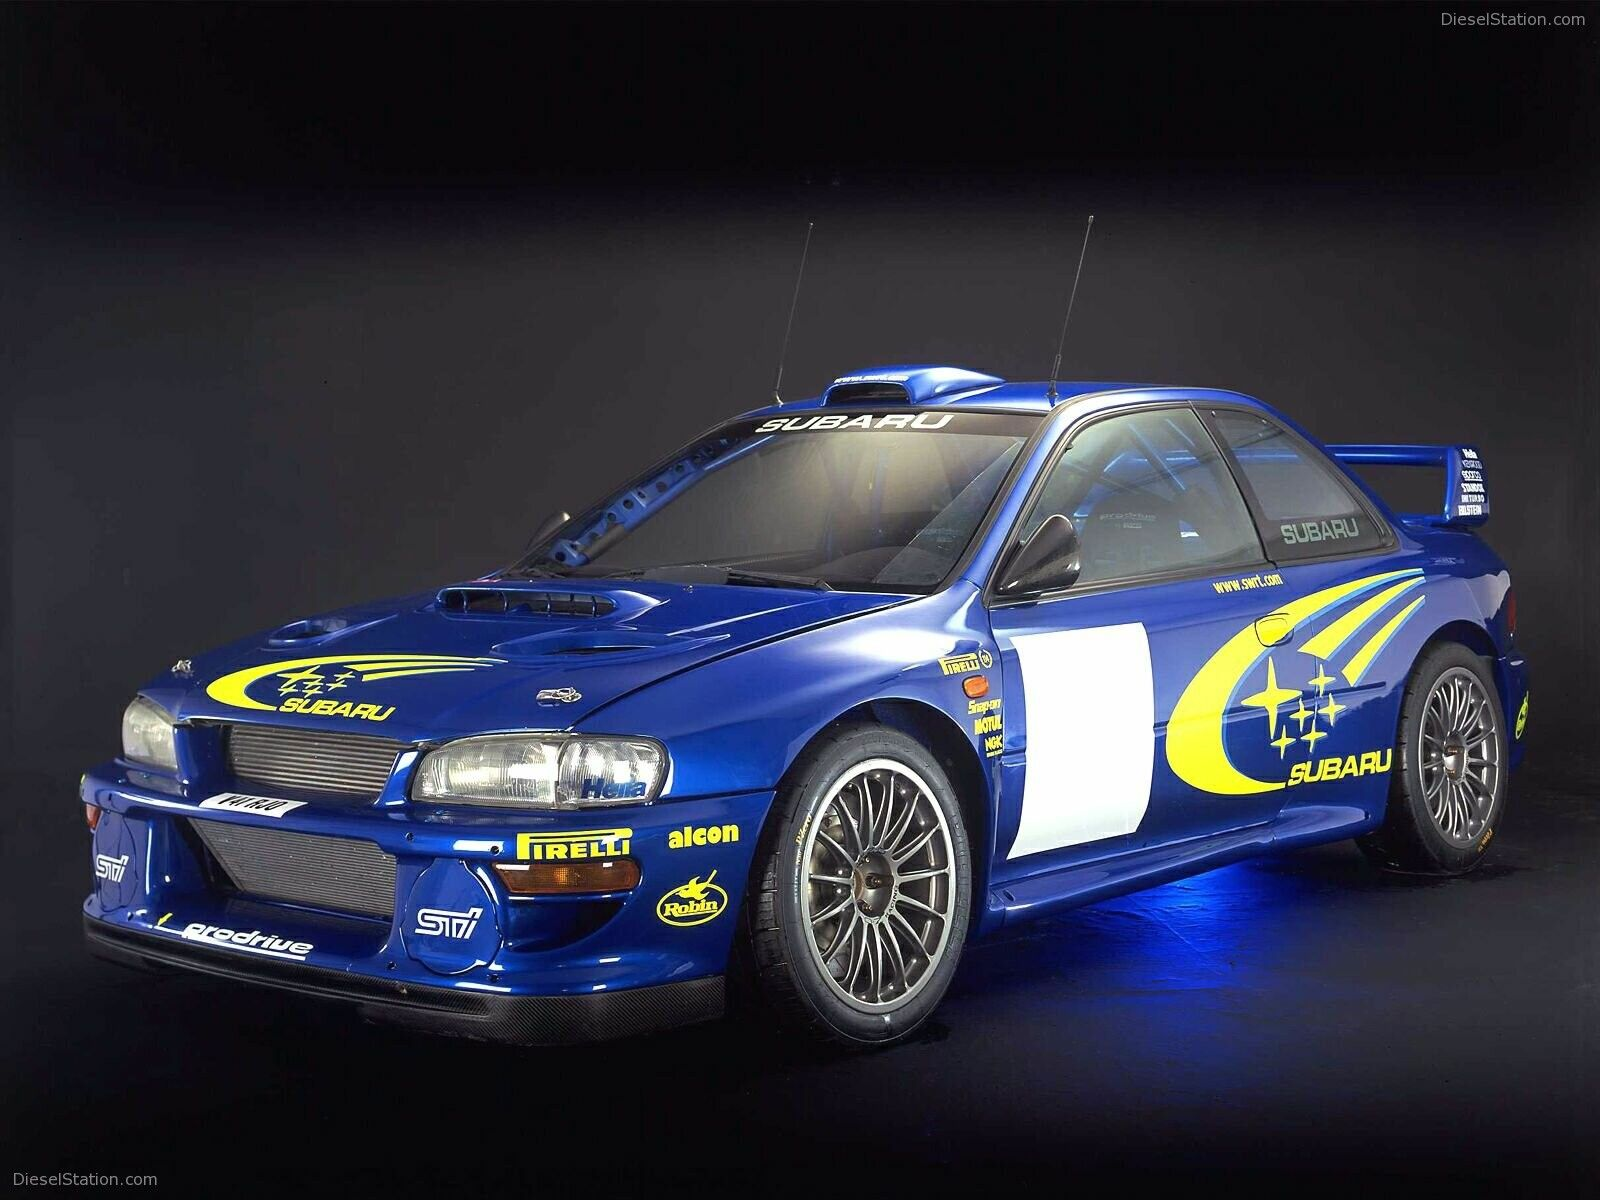 1998 rally impreza 22b sti car lust pinterest rally wallpapers and subaru. Black Bedroom Furniture Sets. Home Design Ideas